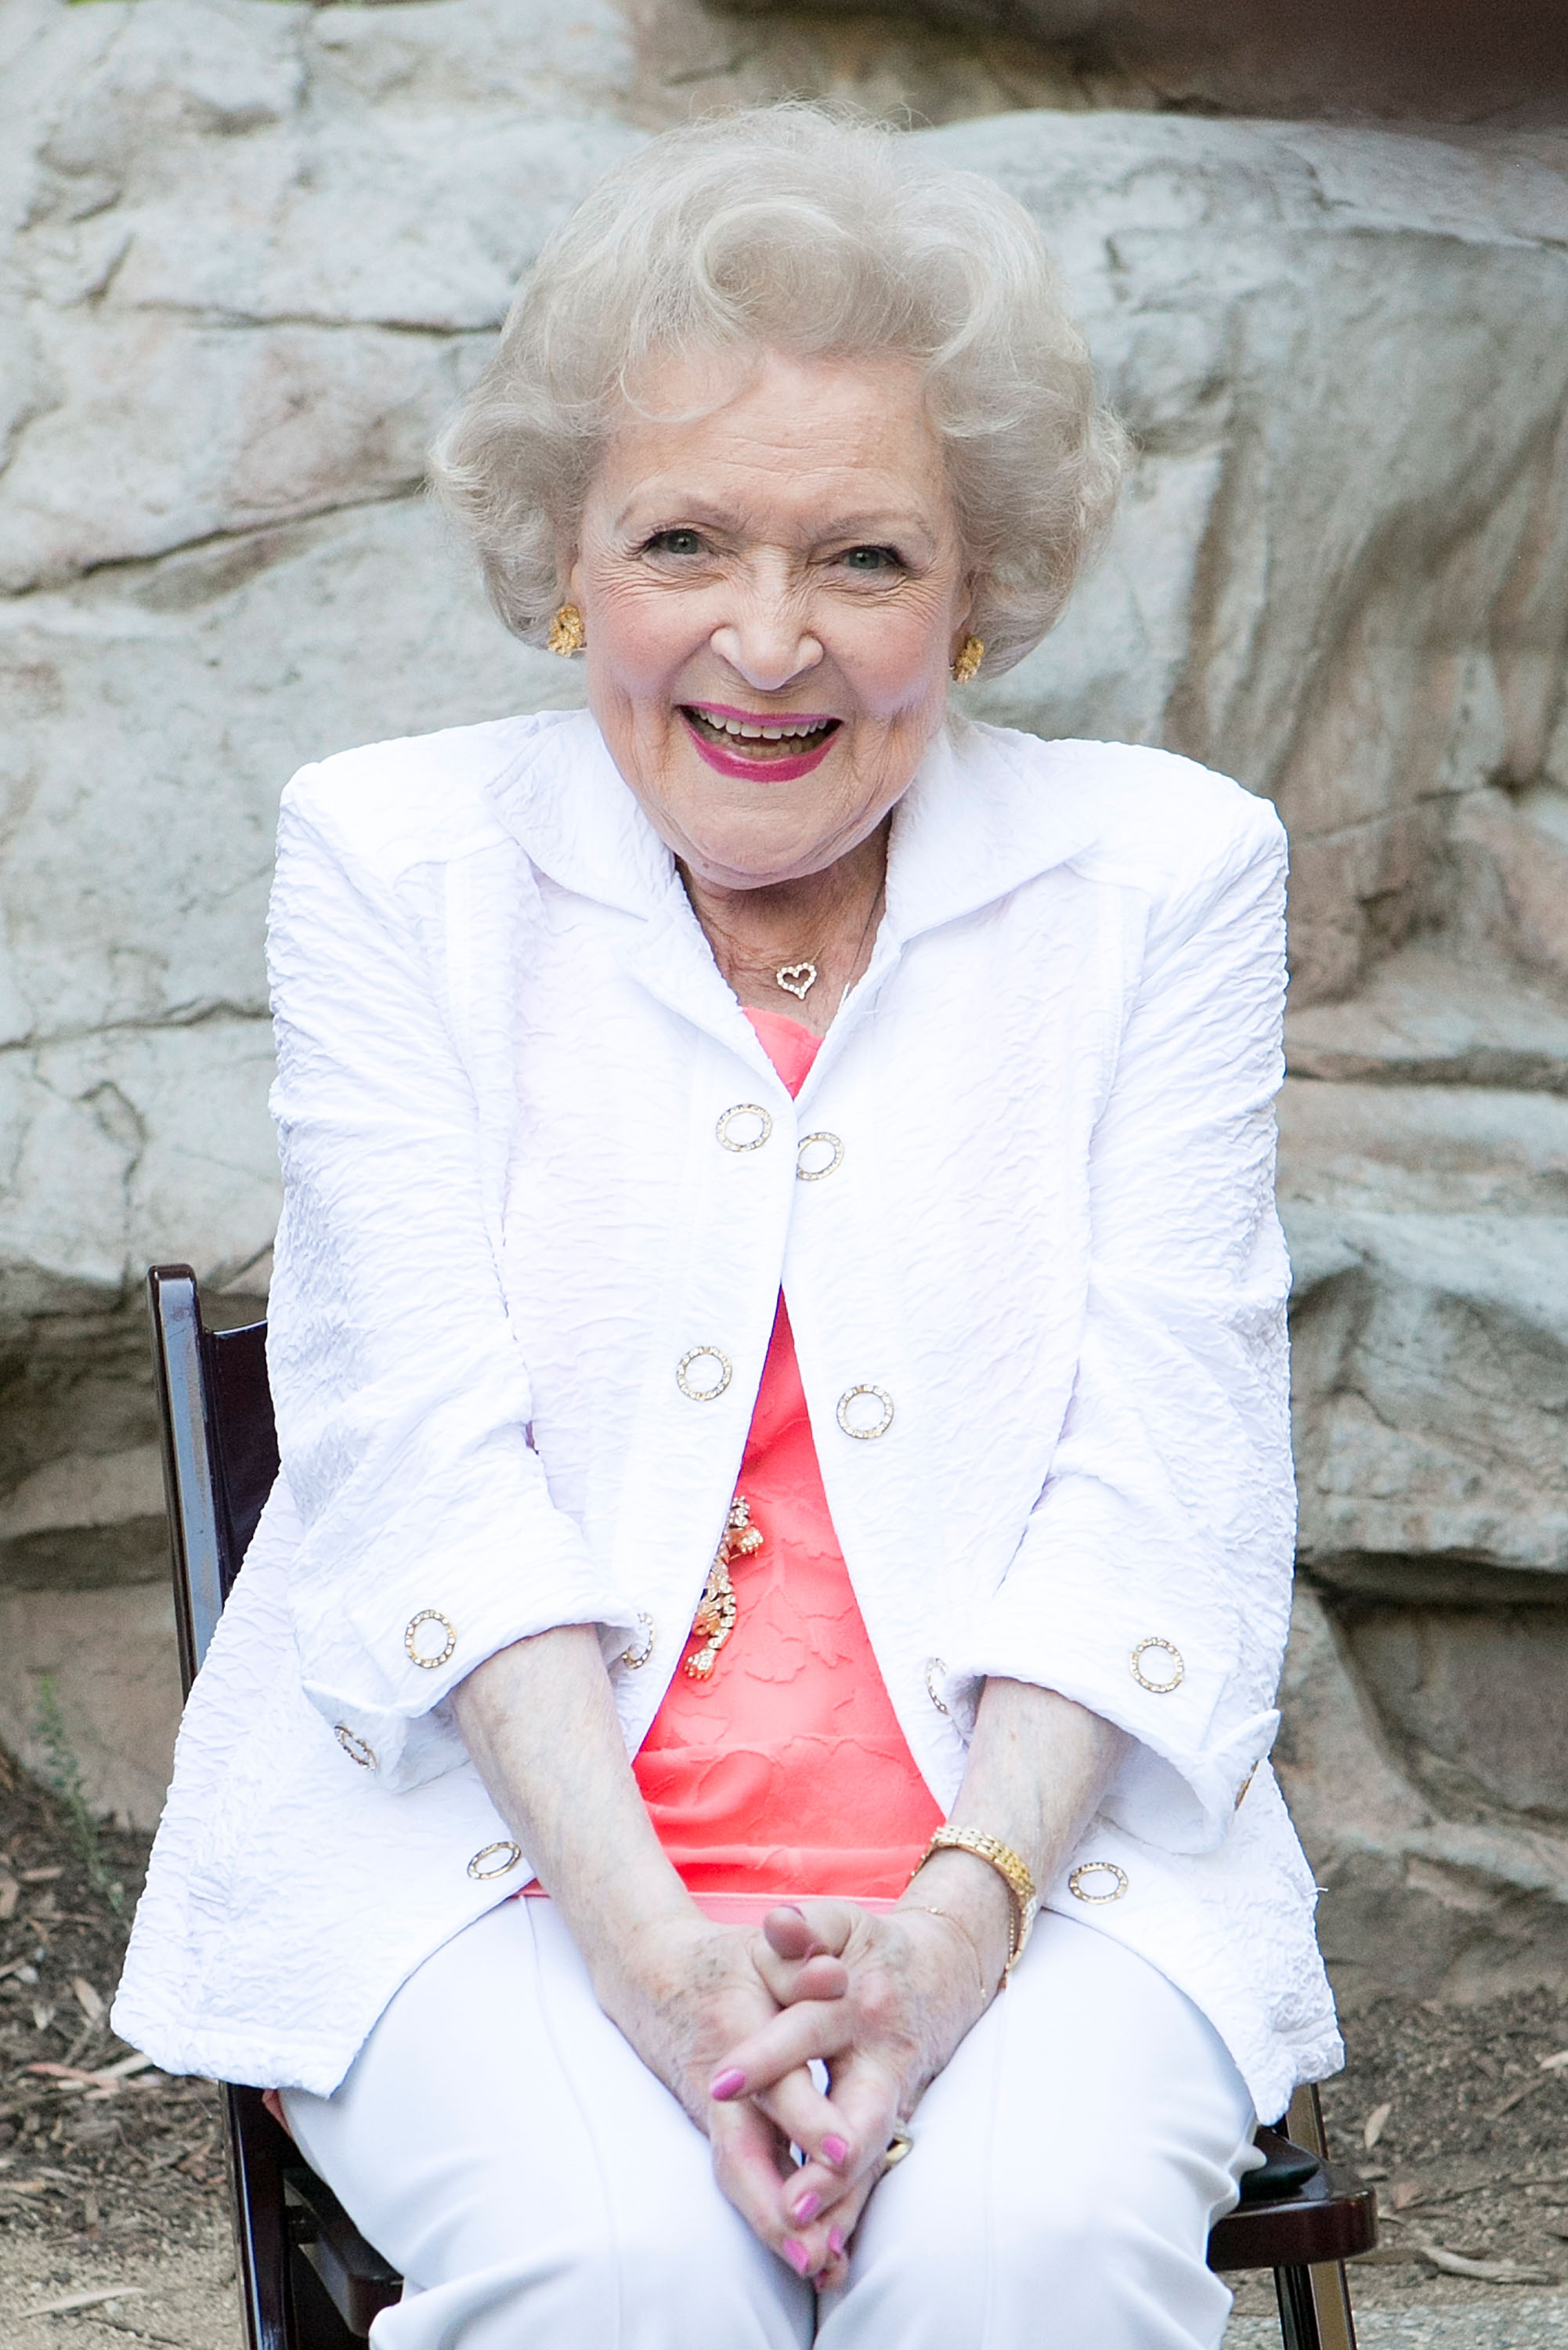 Betty White on June 20, 2015 in Los Angeles, California.